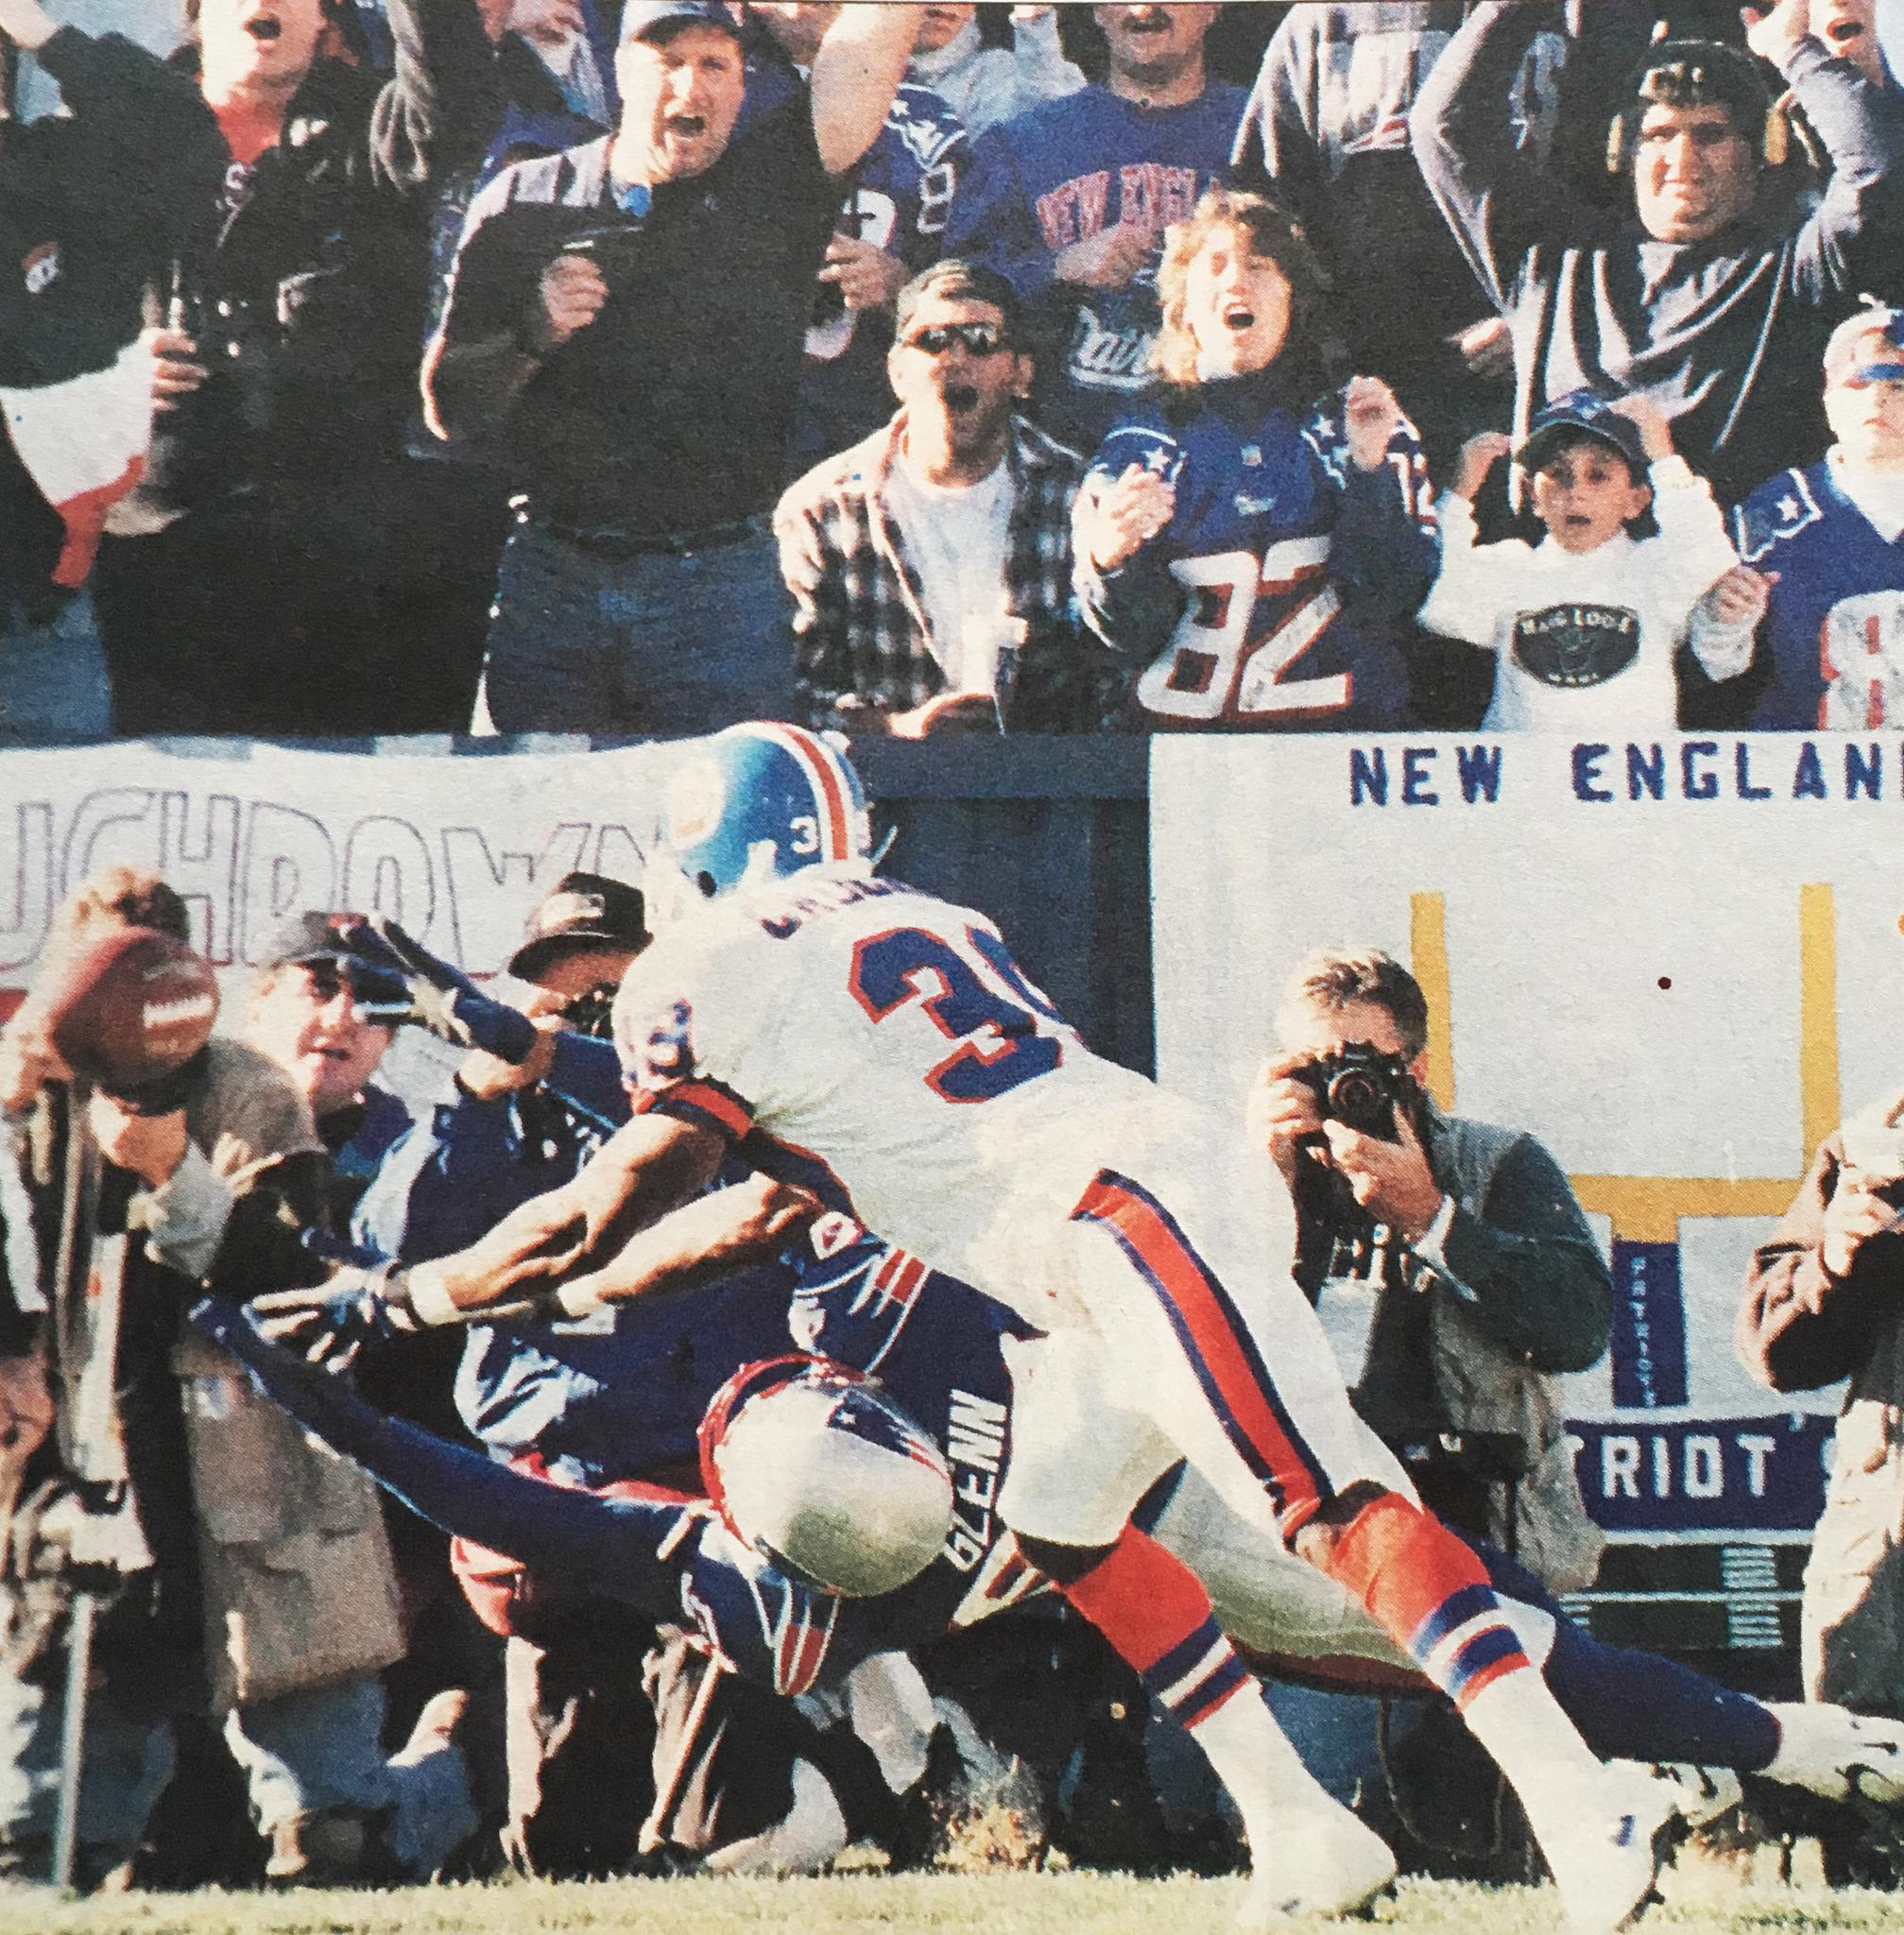 Terry Glenn was unable to haul in this pass.